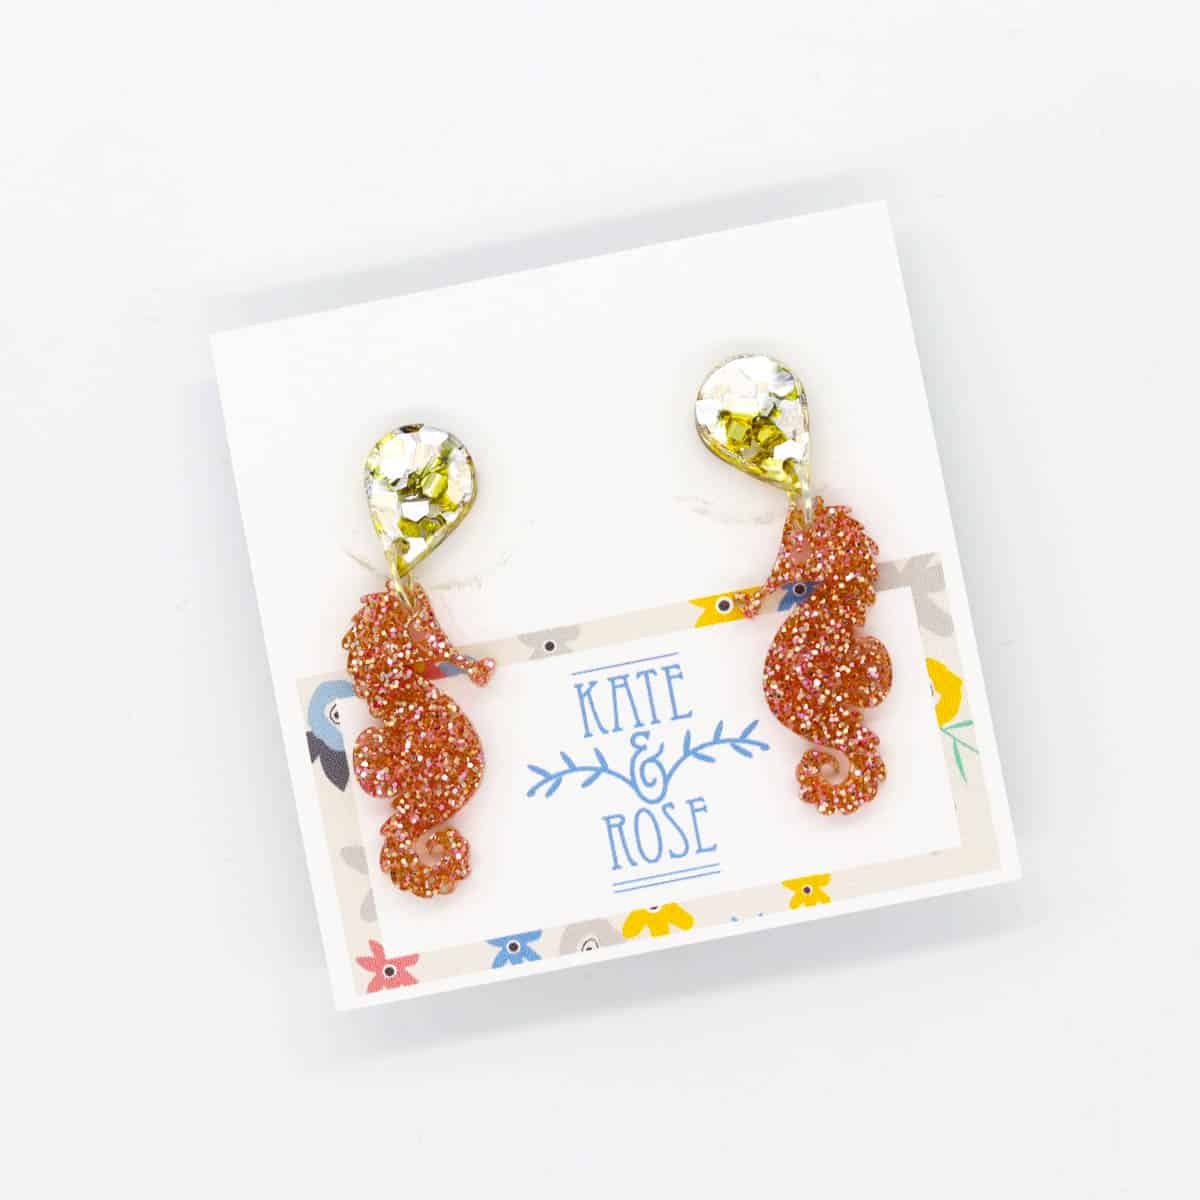 Sparkly Seahorse Earrings On A Glittery Gold Post By Kate And Rose (Fitzroy)